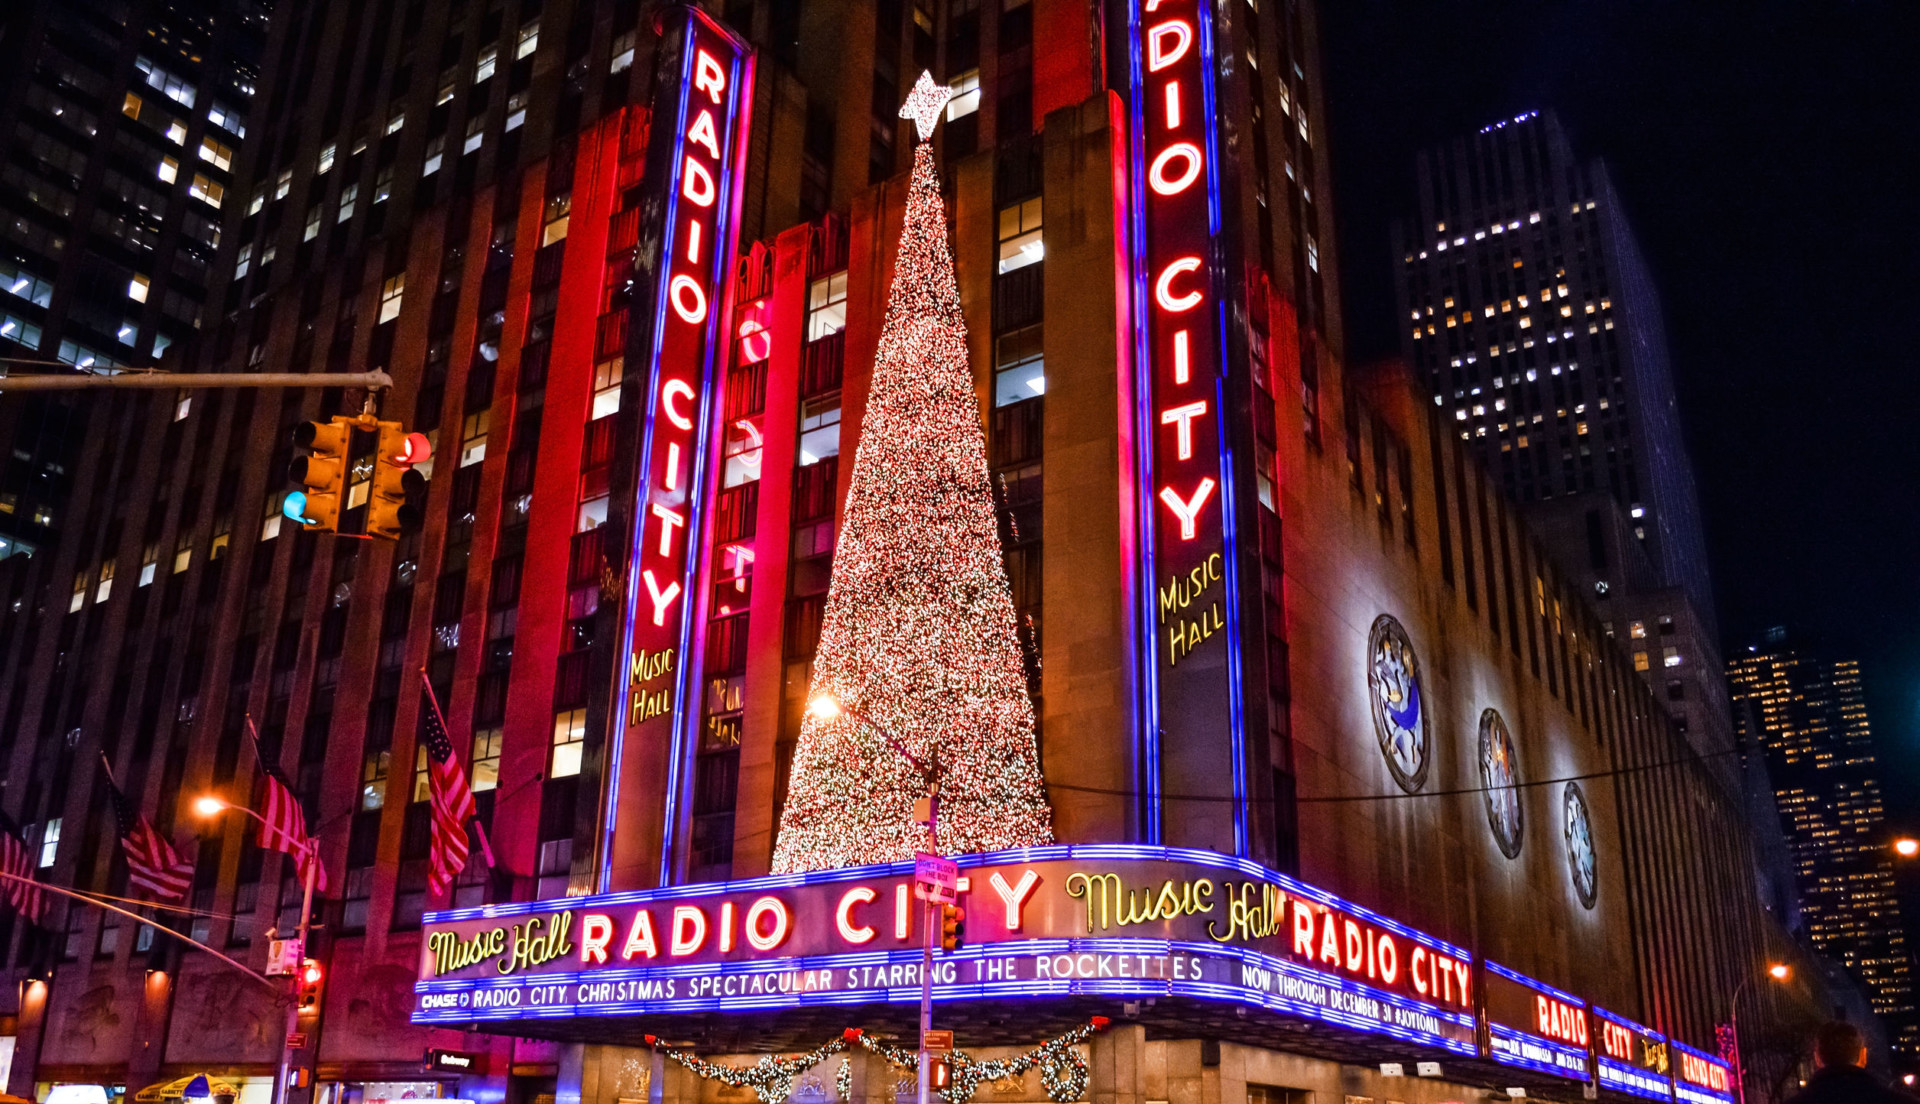 Christmas at Radio City Music Hall